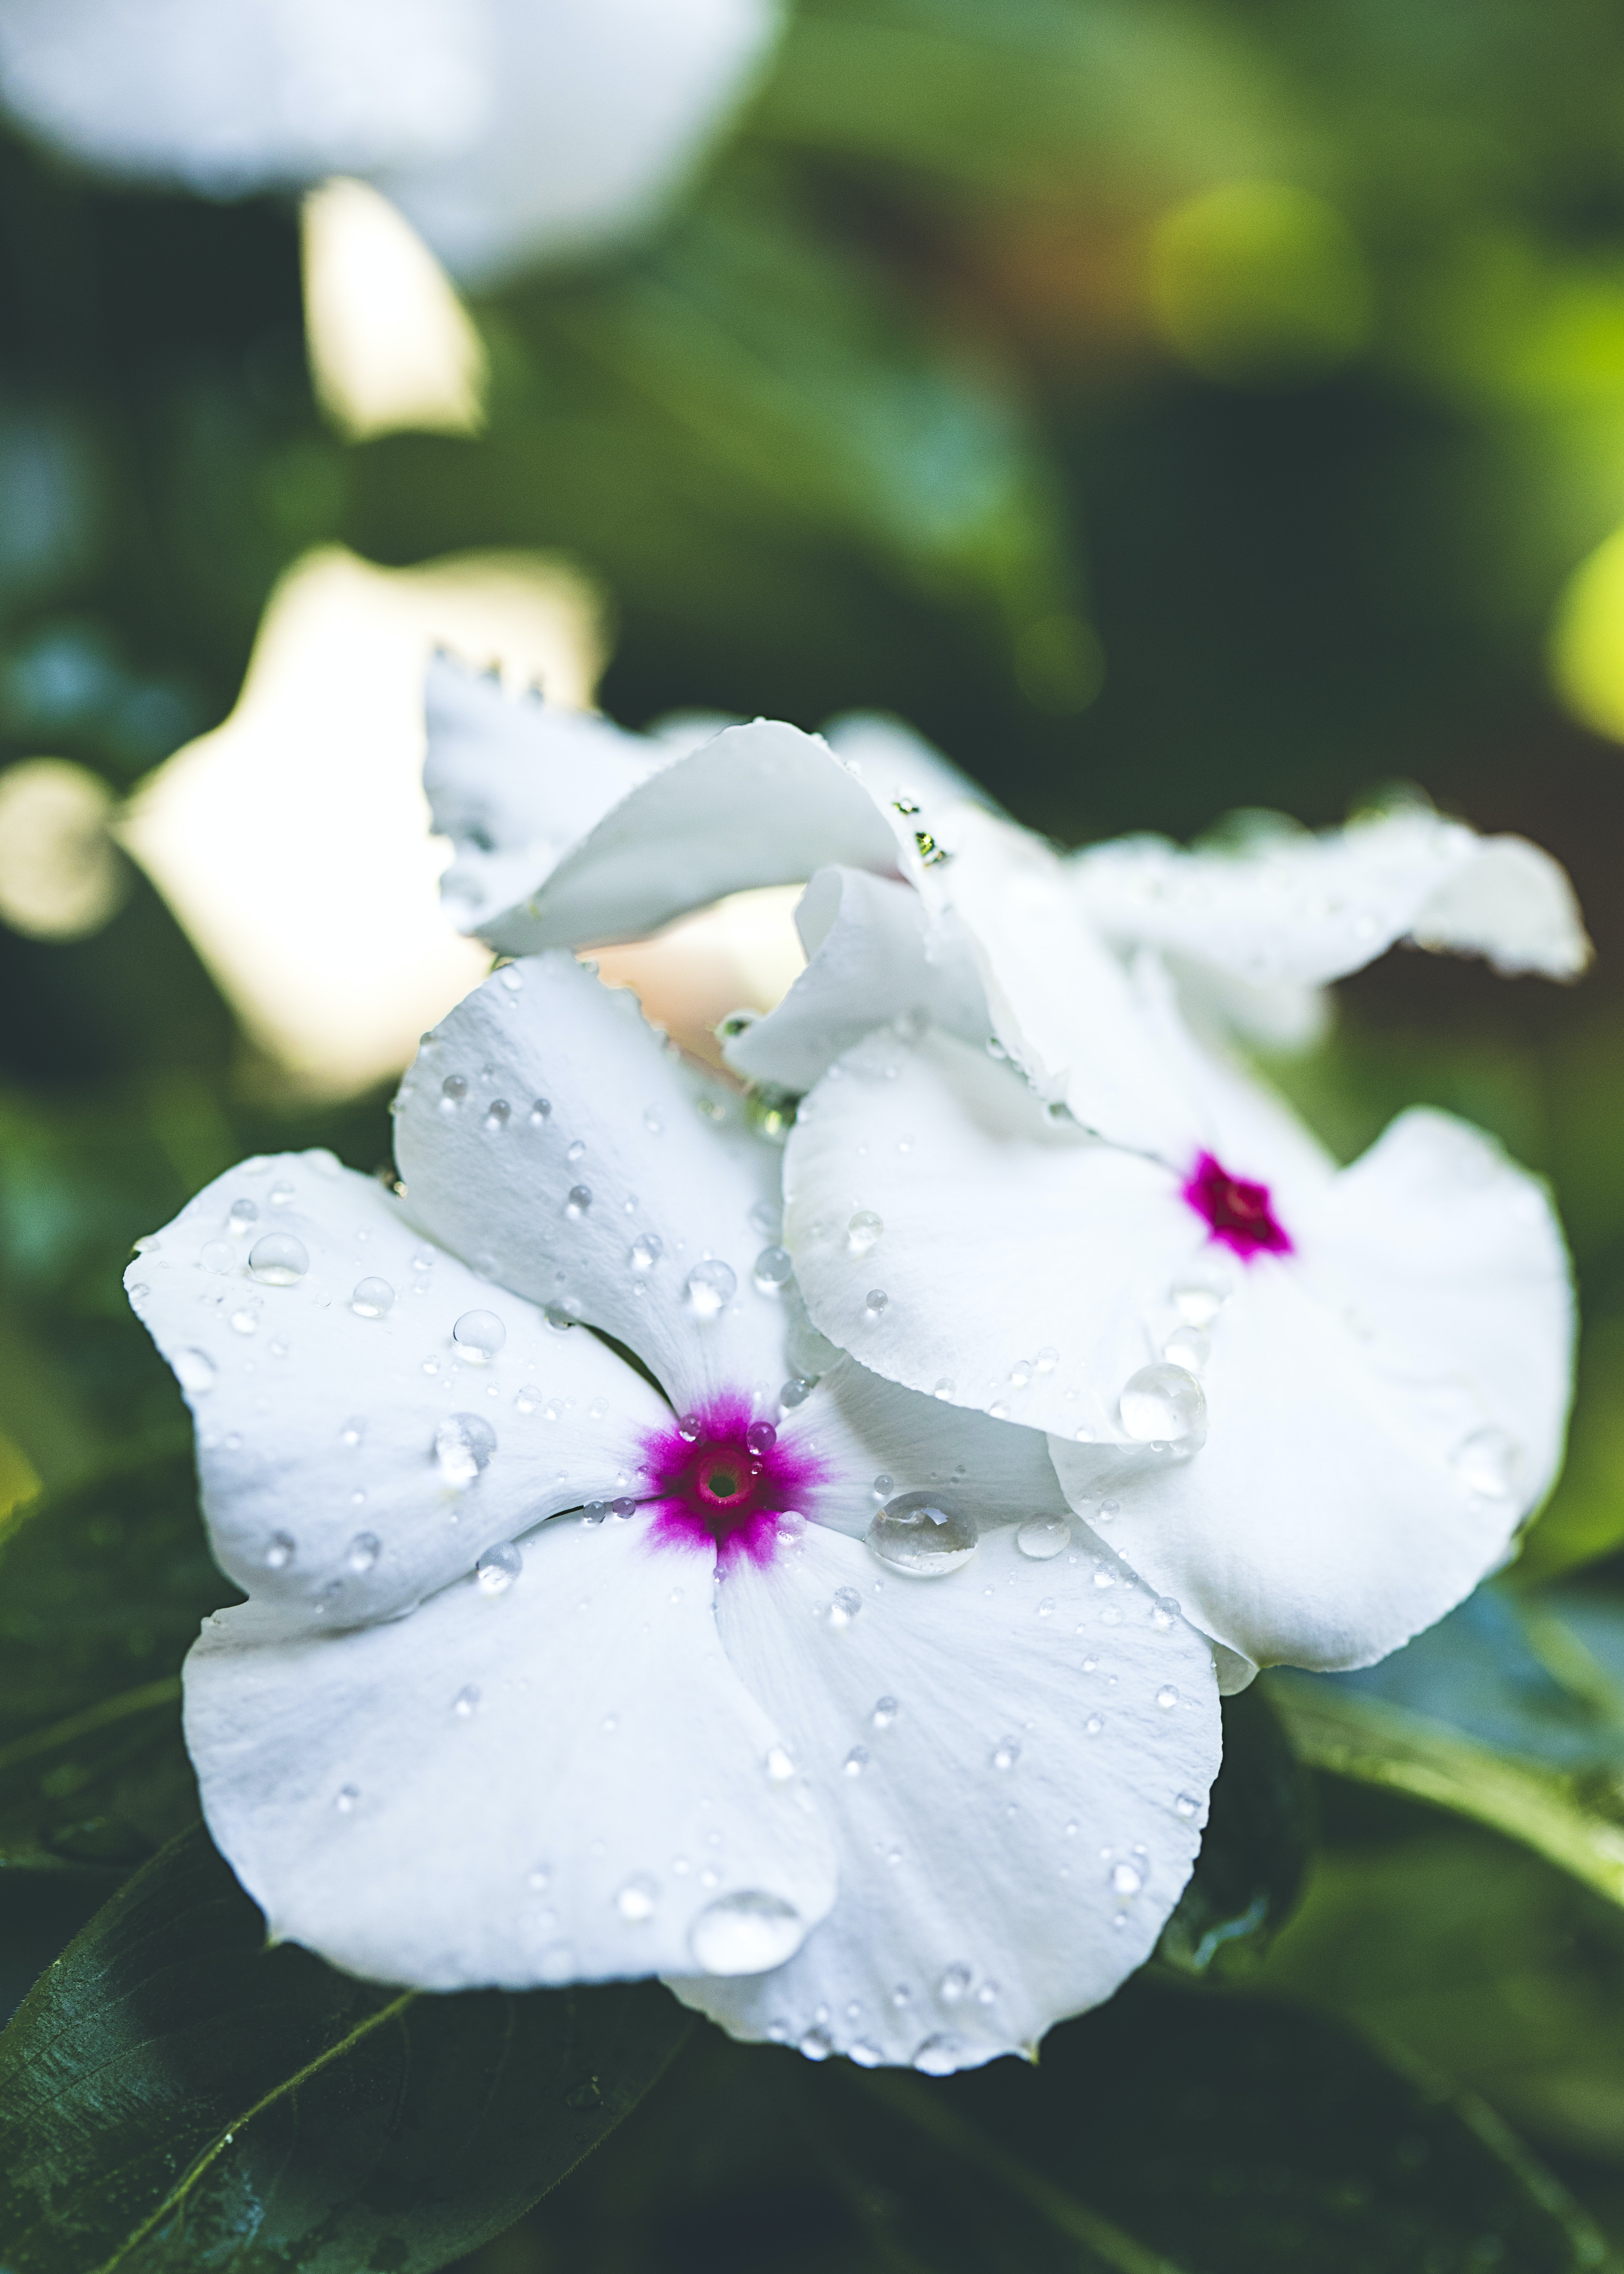 White flowers with pink details wet with drops of dew